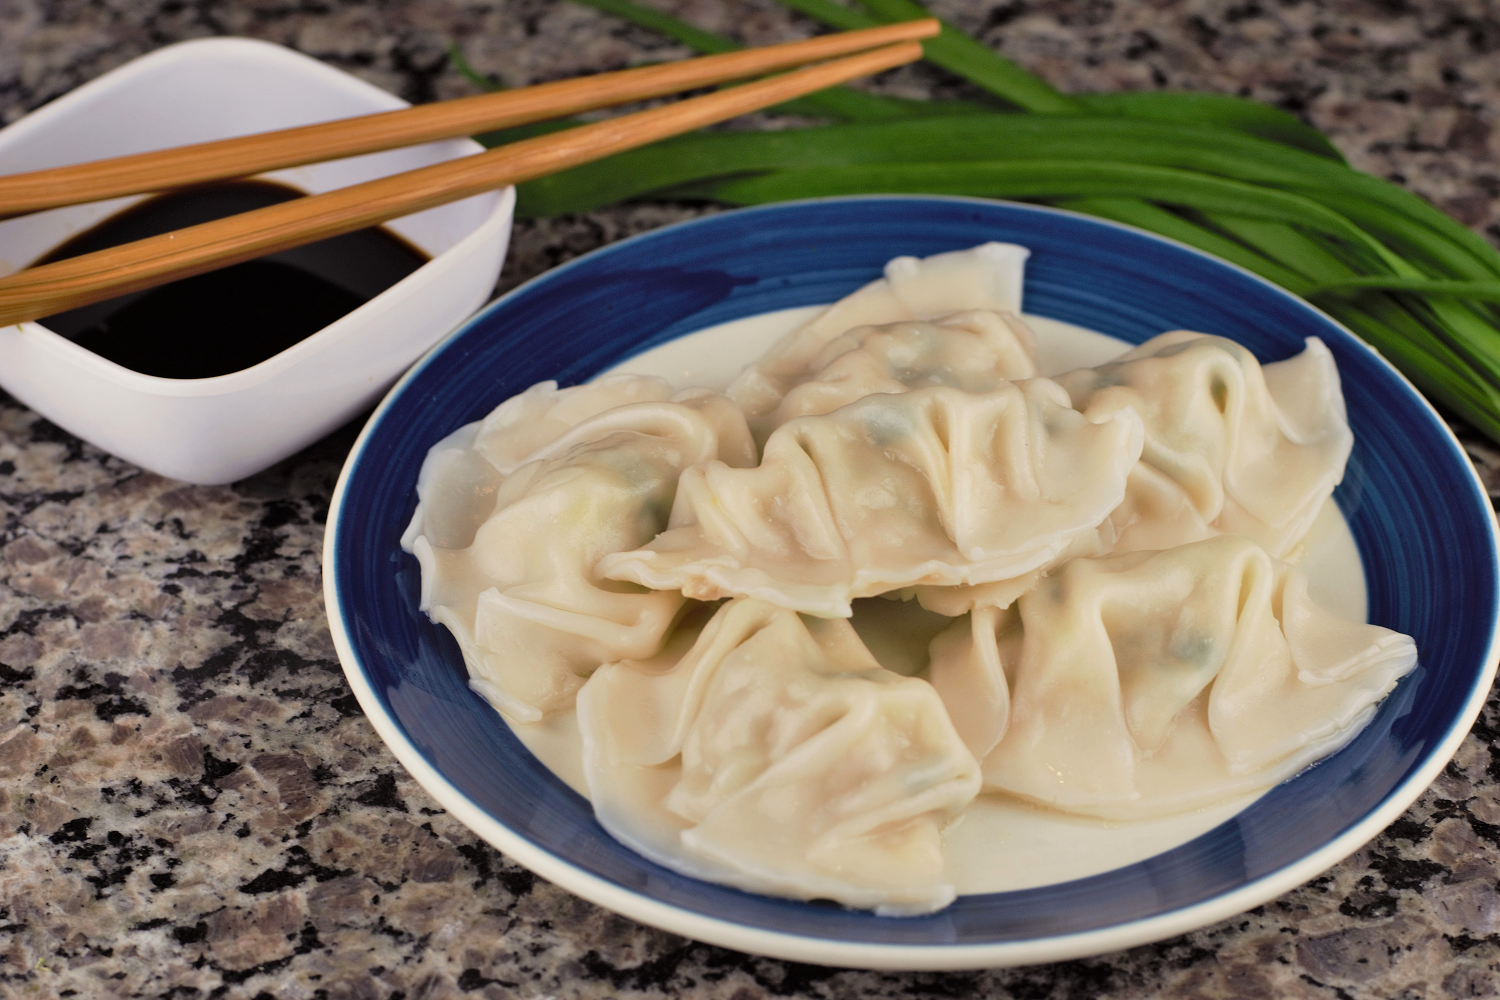 Meat cooked in soft noodles? Check. Getting to eat an appetizer as a meal? Check. Dippable? Oh yes.